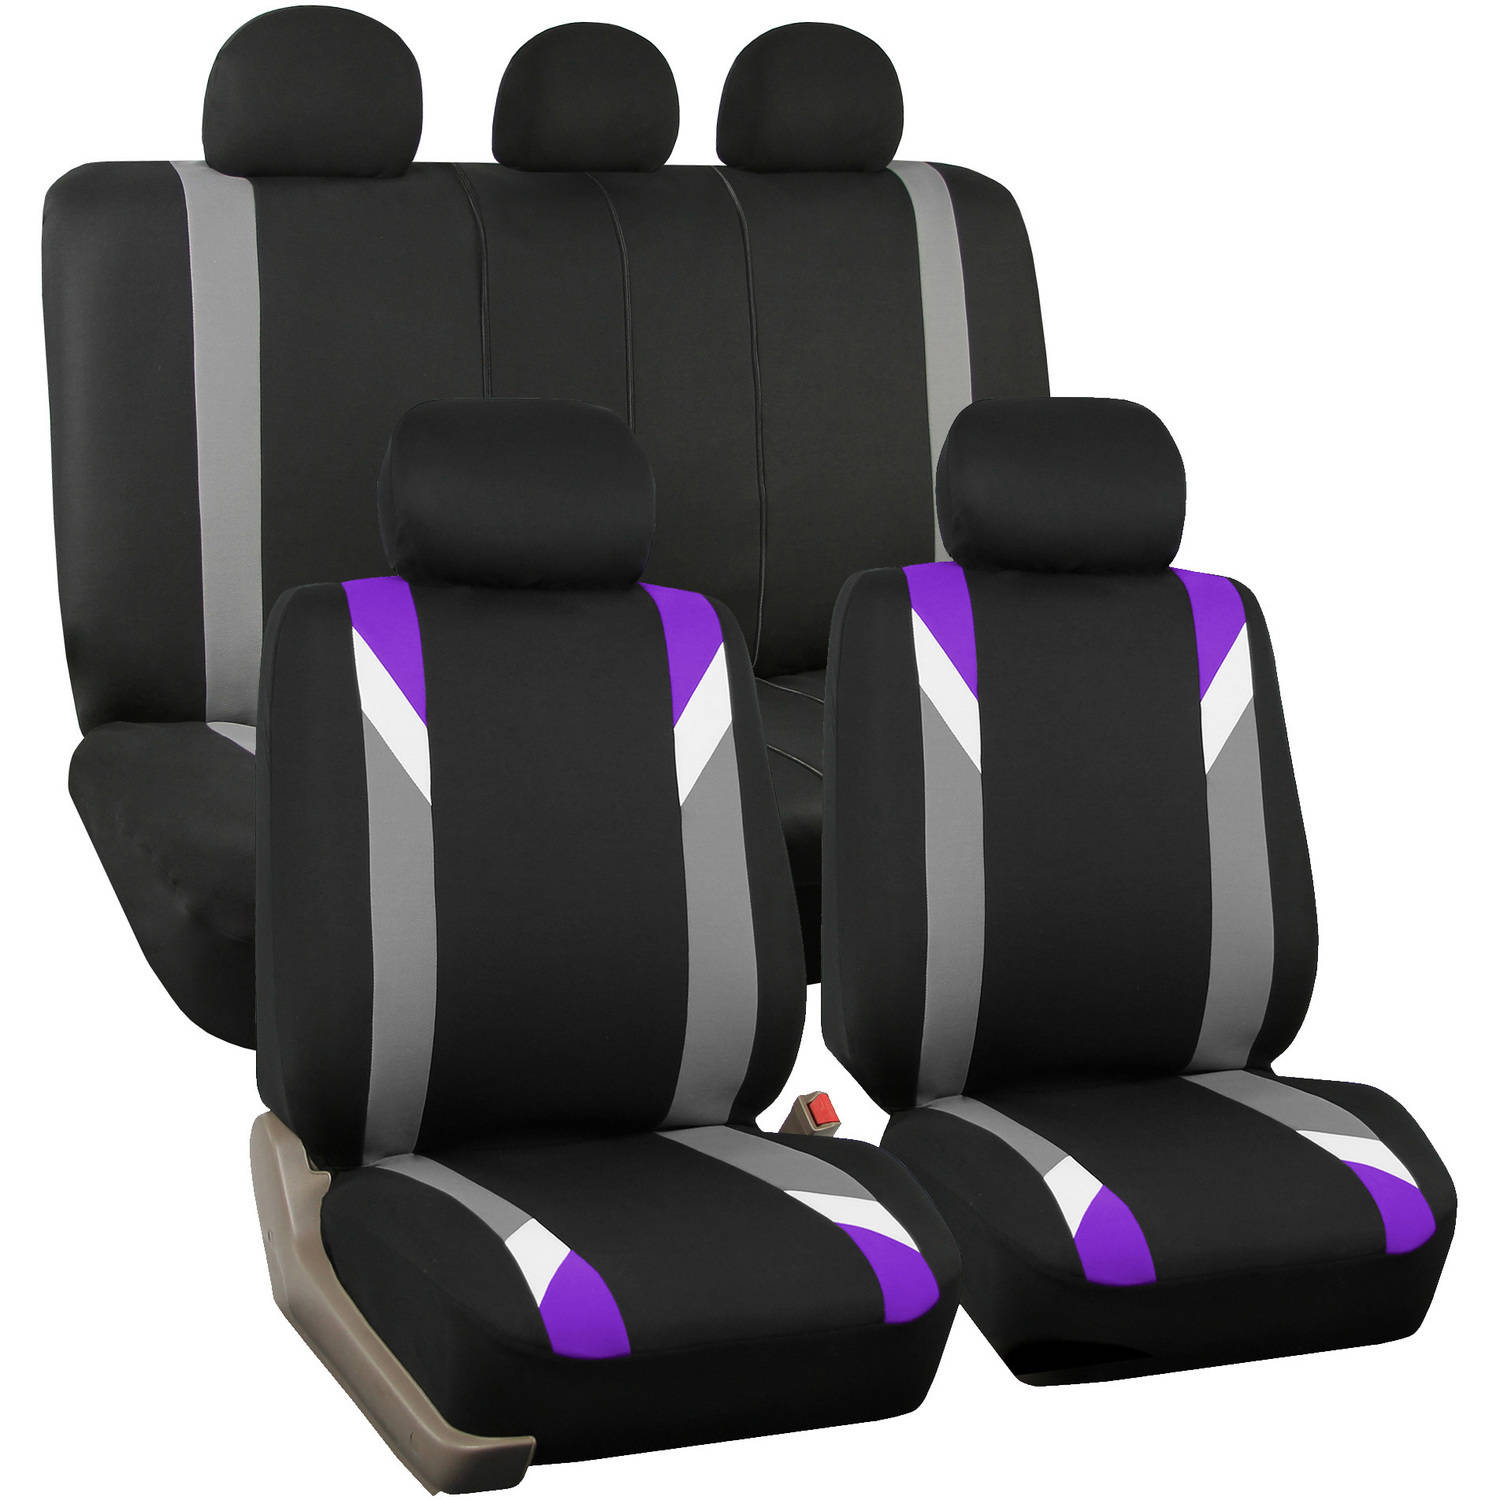 FH Group Airbag Compatible Modernistic Flat Cloth Full Set Seat Covers, Purple